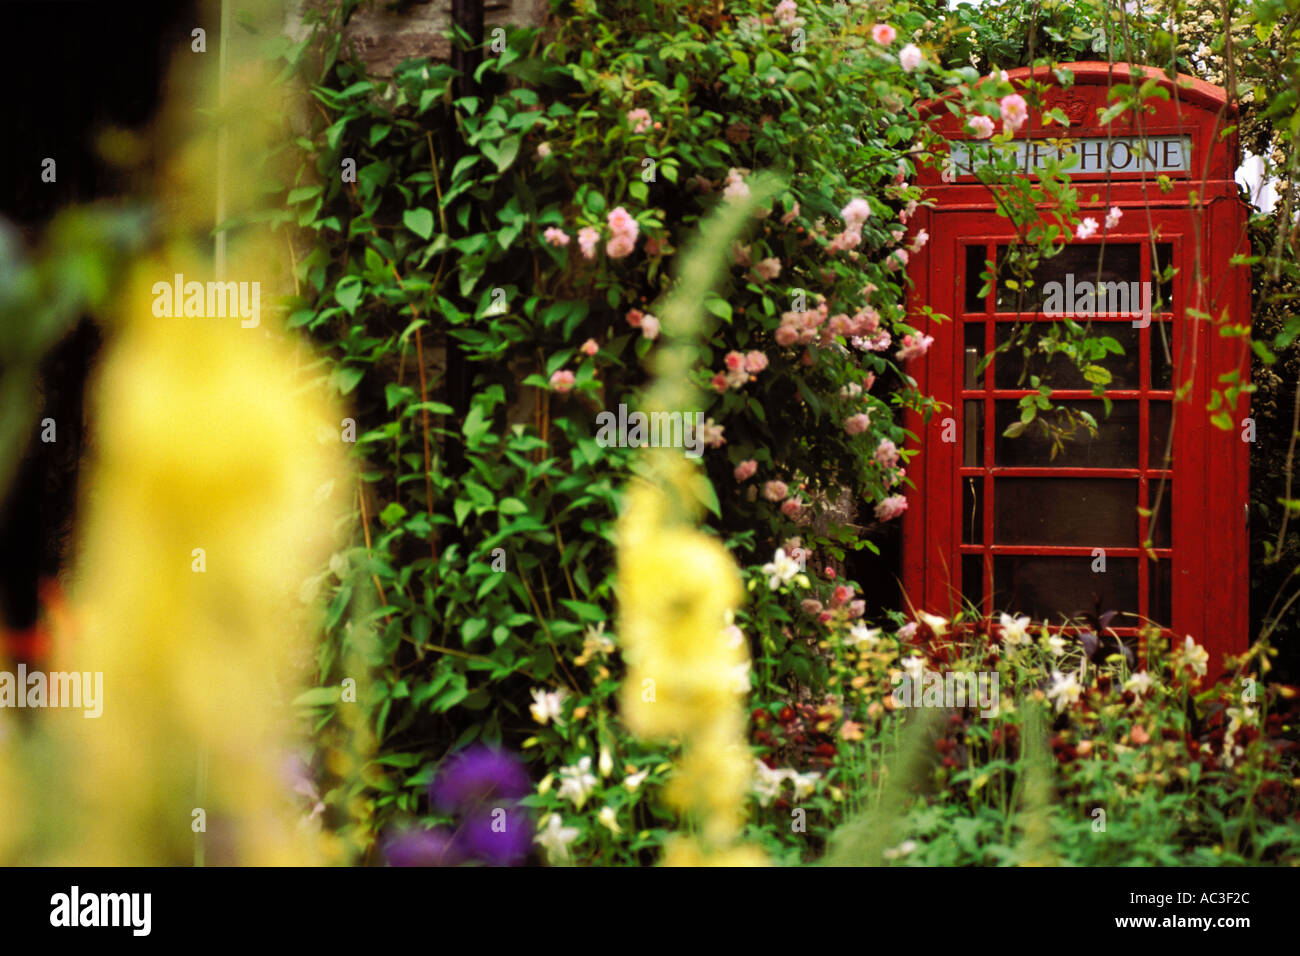 England, Chelsea Flower Show, Yorkshire Forward Garden, Telephone booth Stock Photo